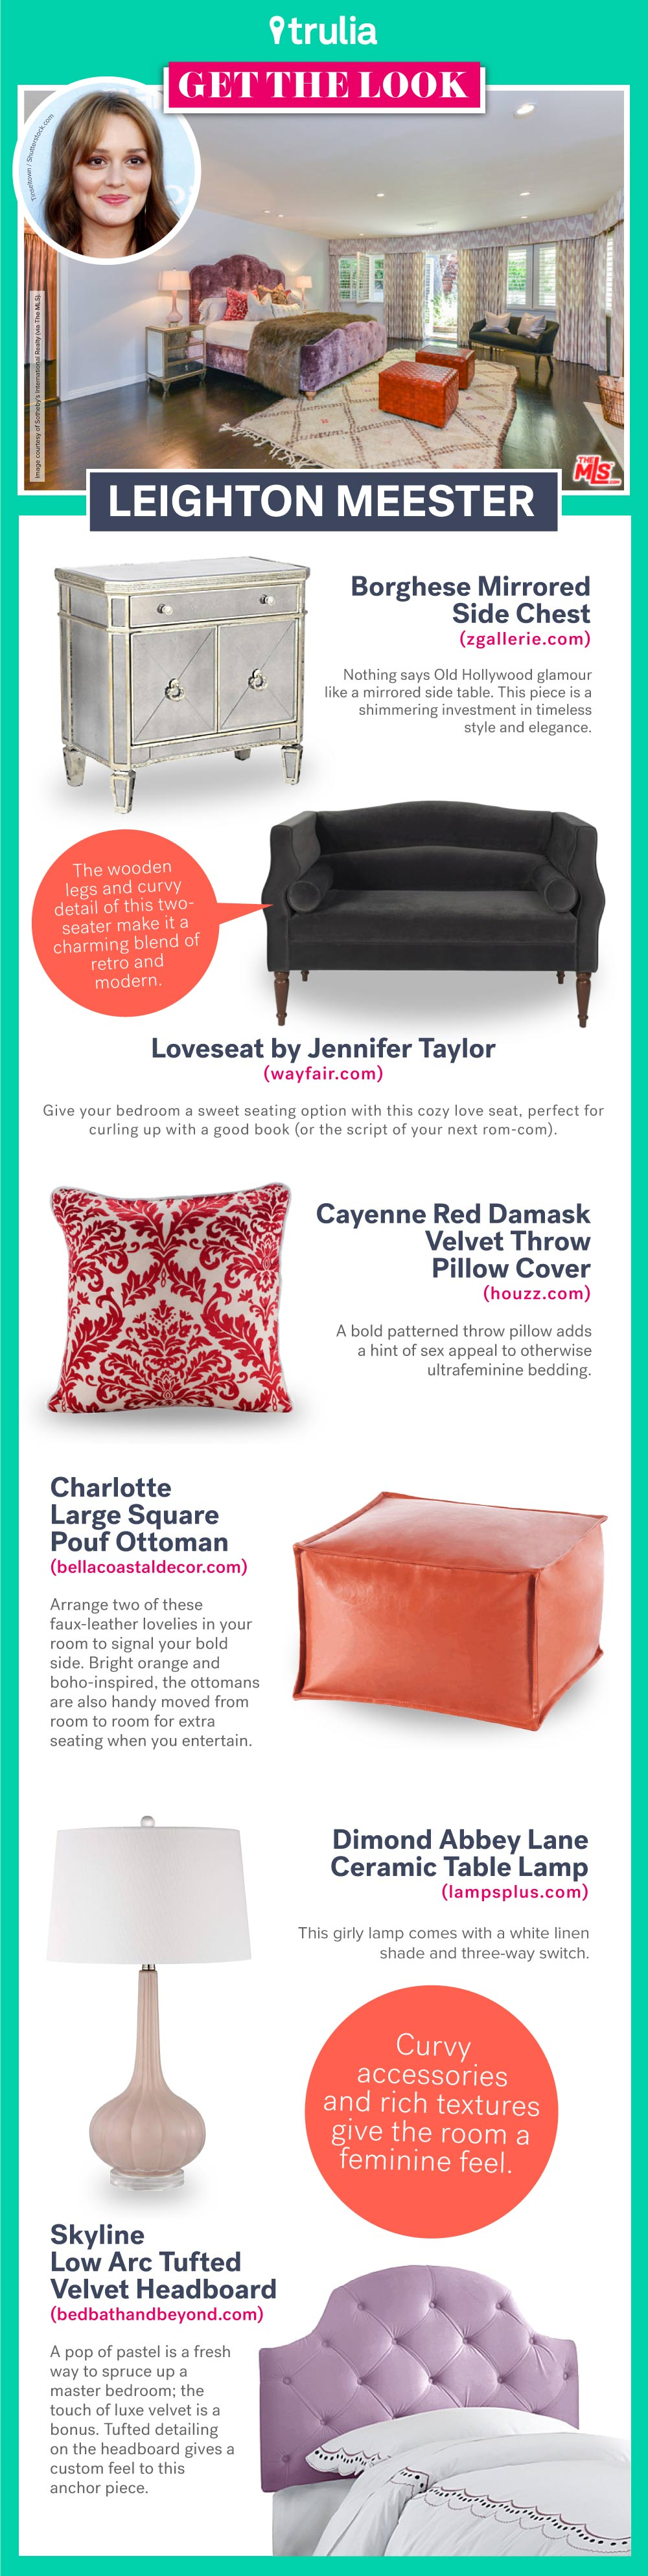 Get the Look - Leighton Meester Bedroom Infographic